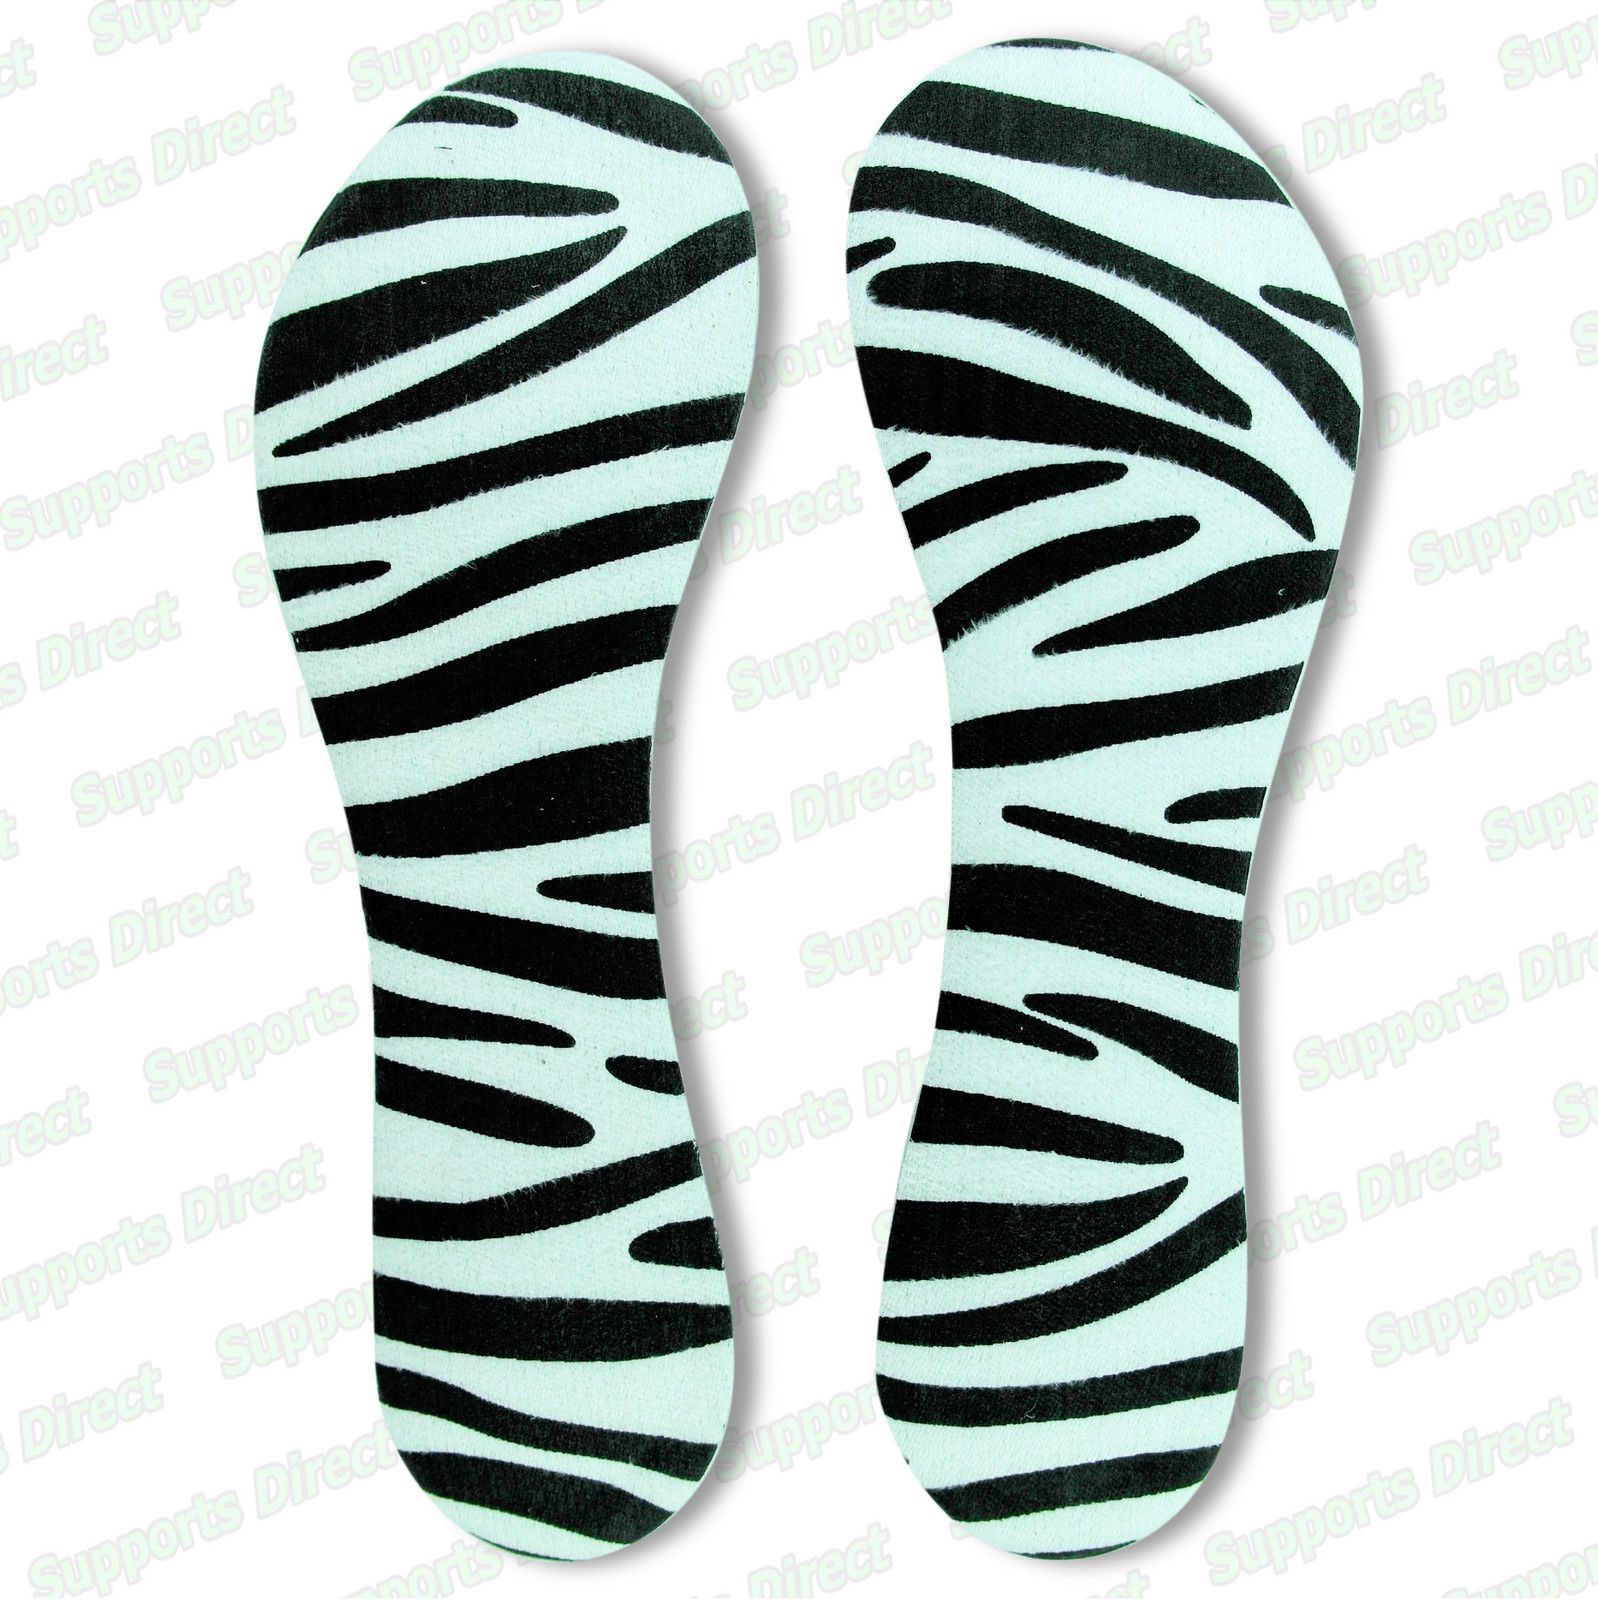 High Heel Shoe Inserts Insole Metatarsal Support Pad Relieve Sore Party Feet zebra